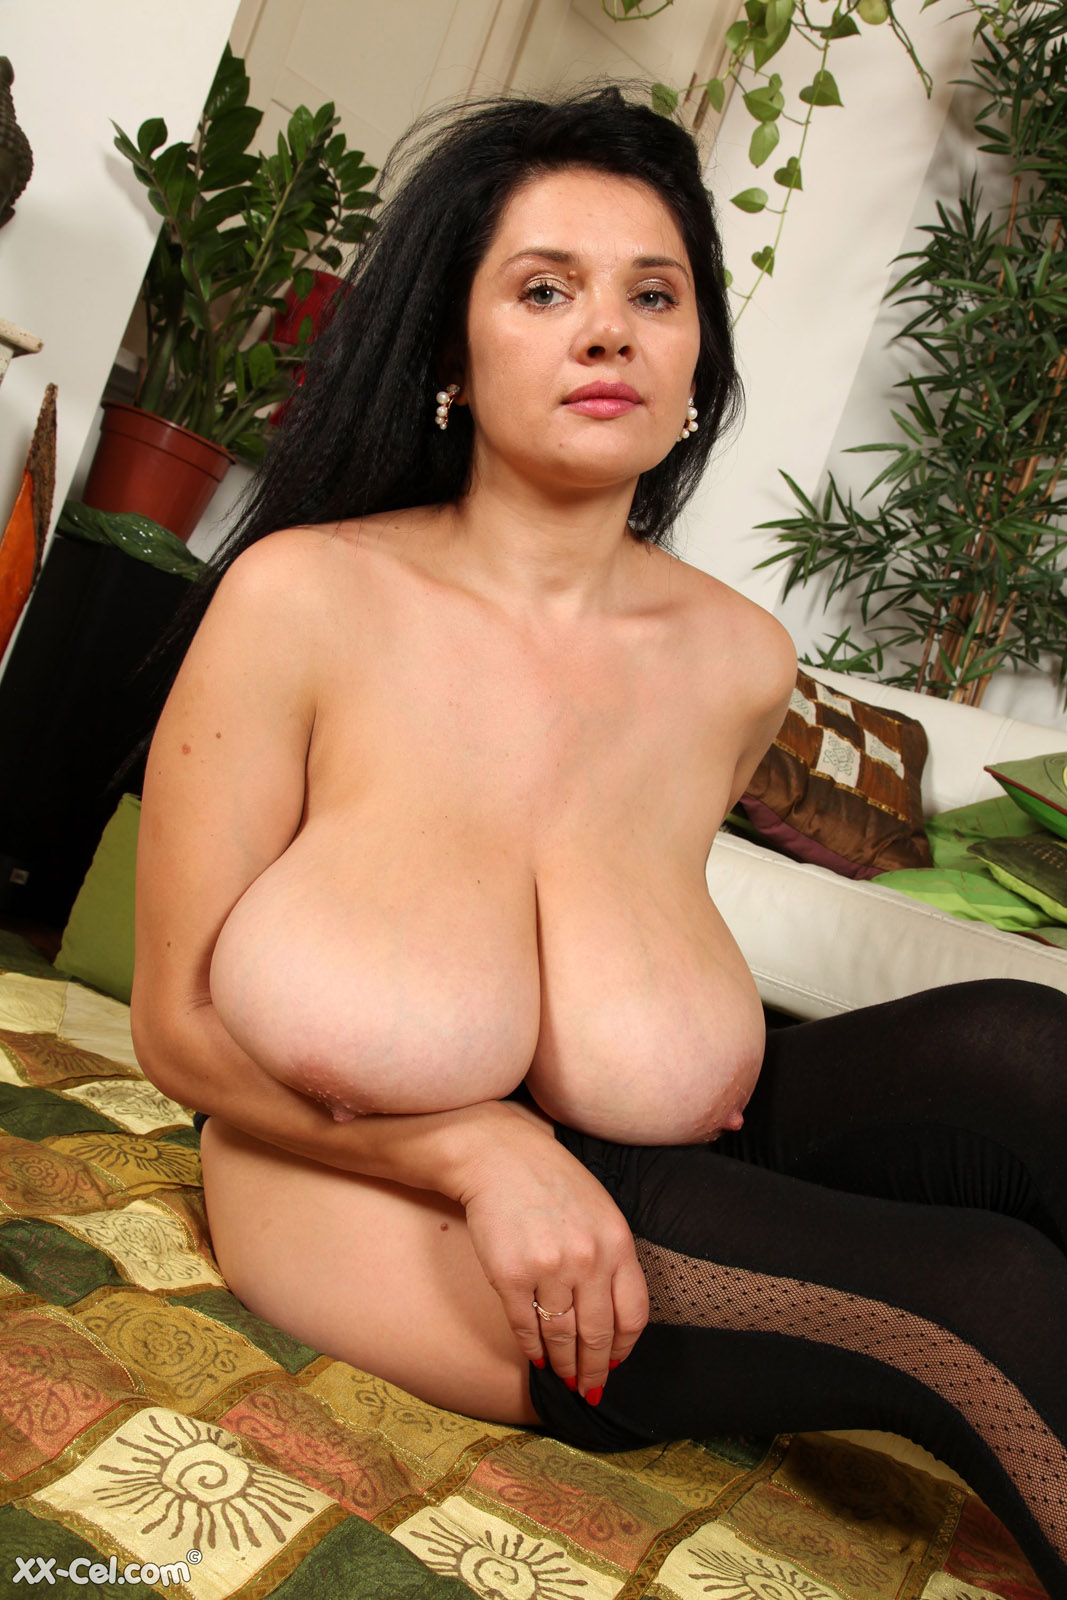 sexy bitch boobs naked